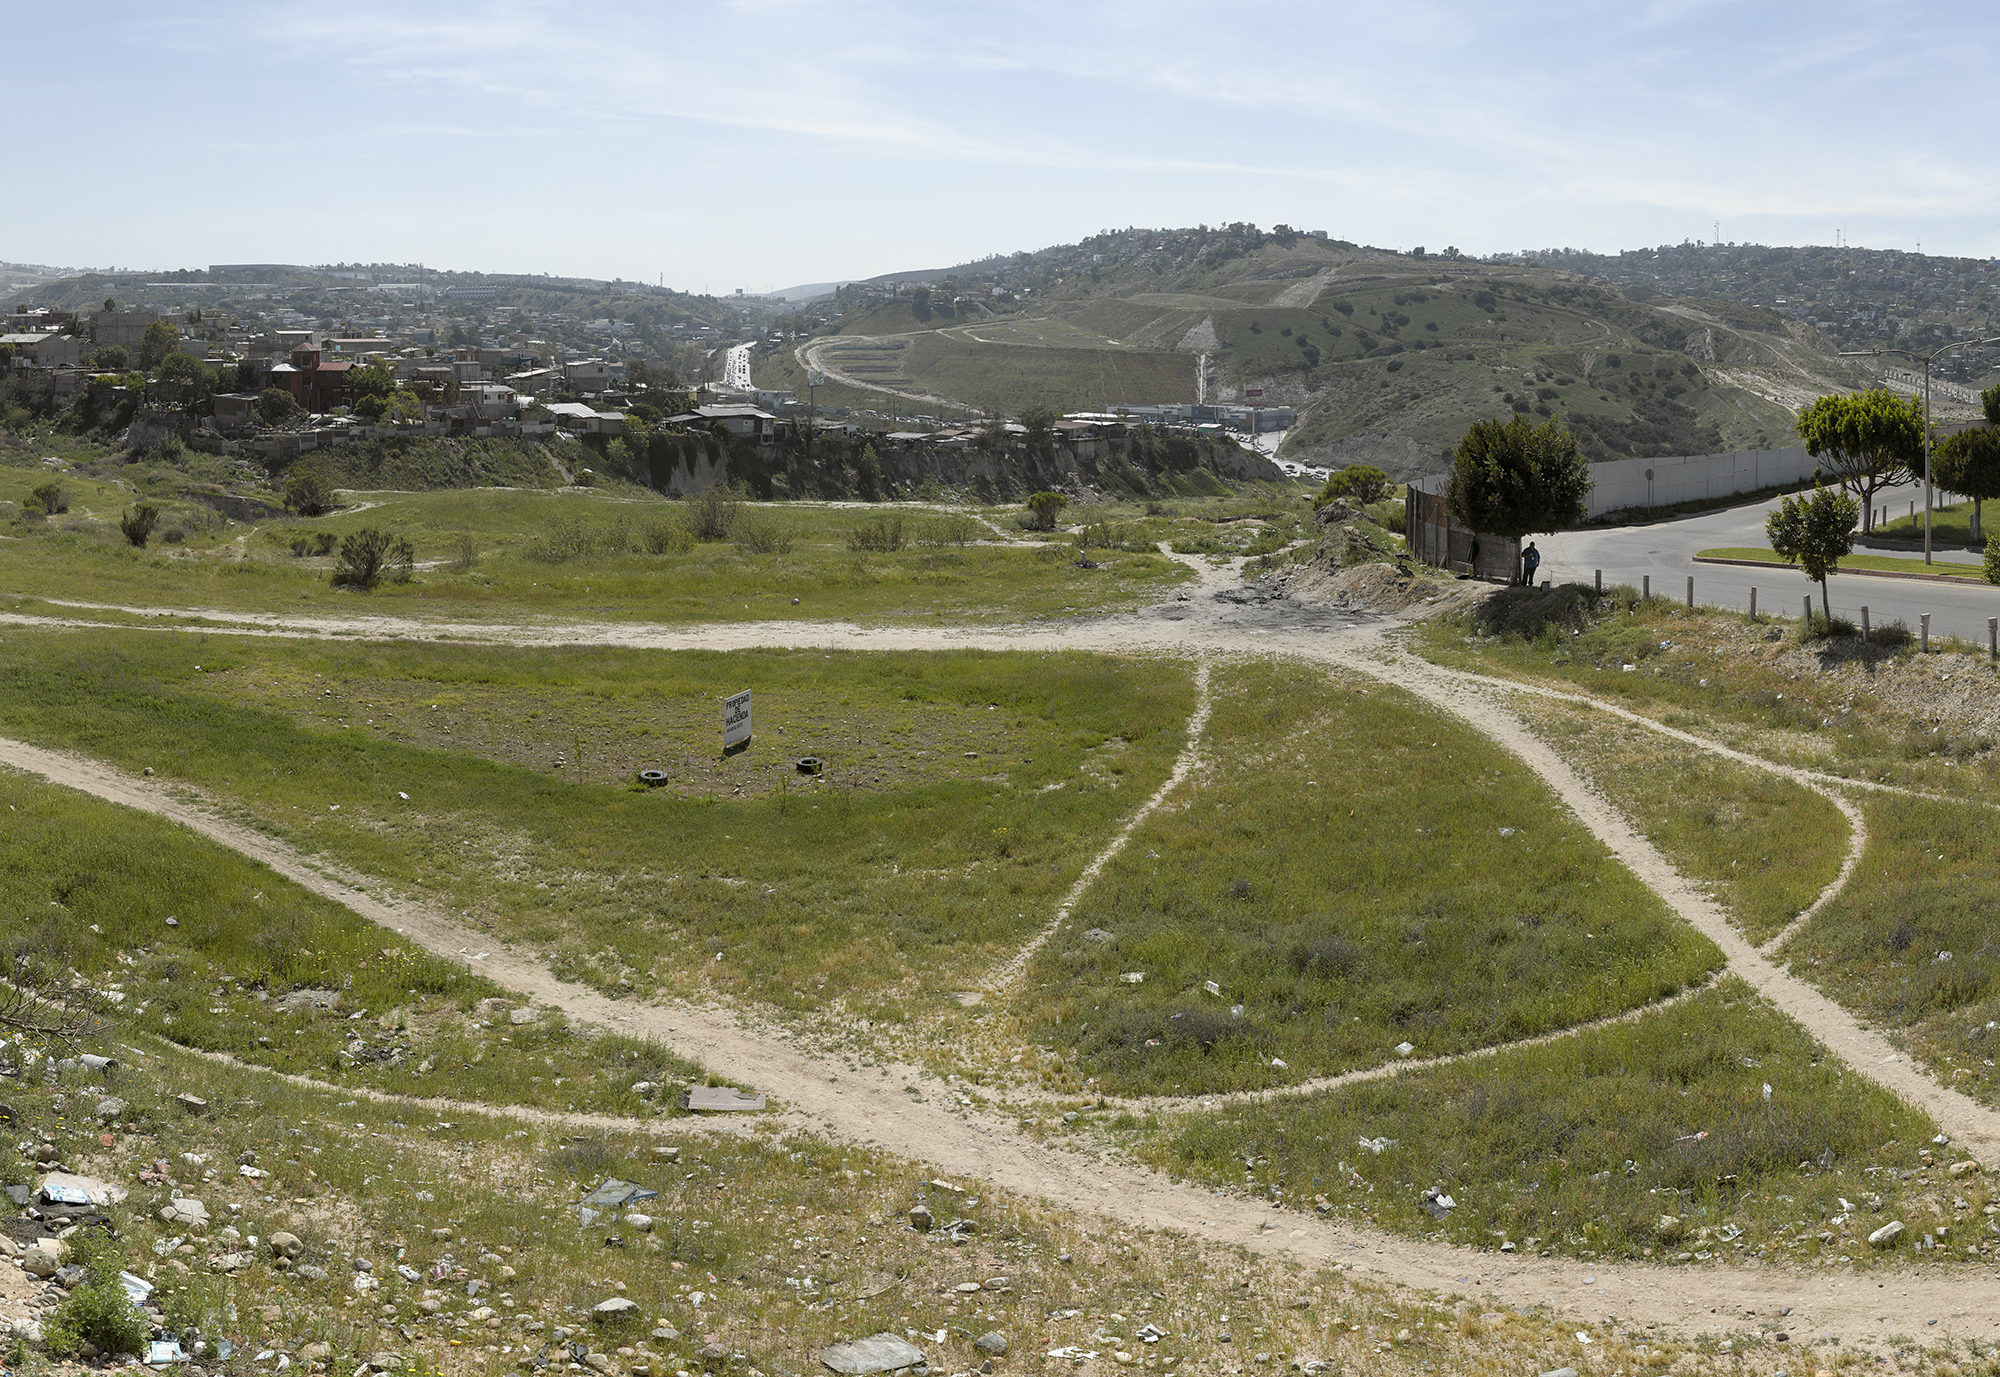 Tijuana residents have worn paths through a vacant patch of grass in this border city. (David Taylor)